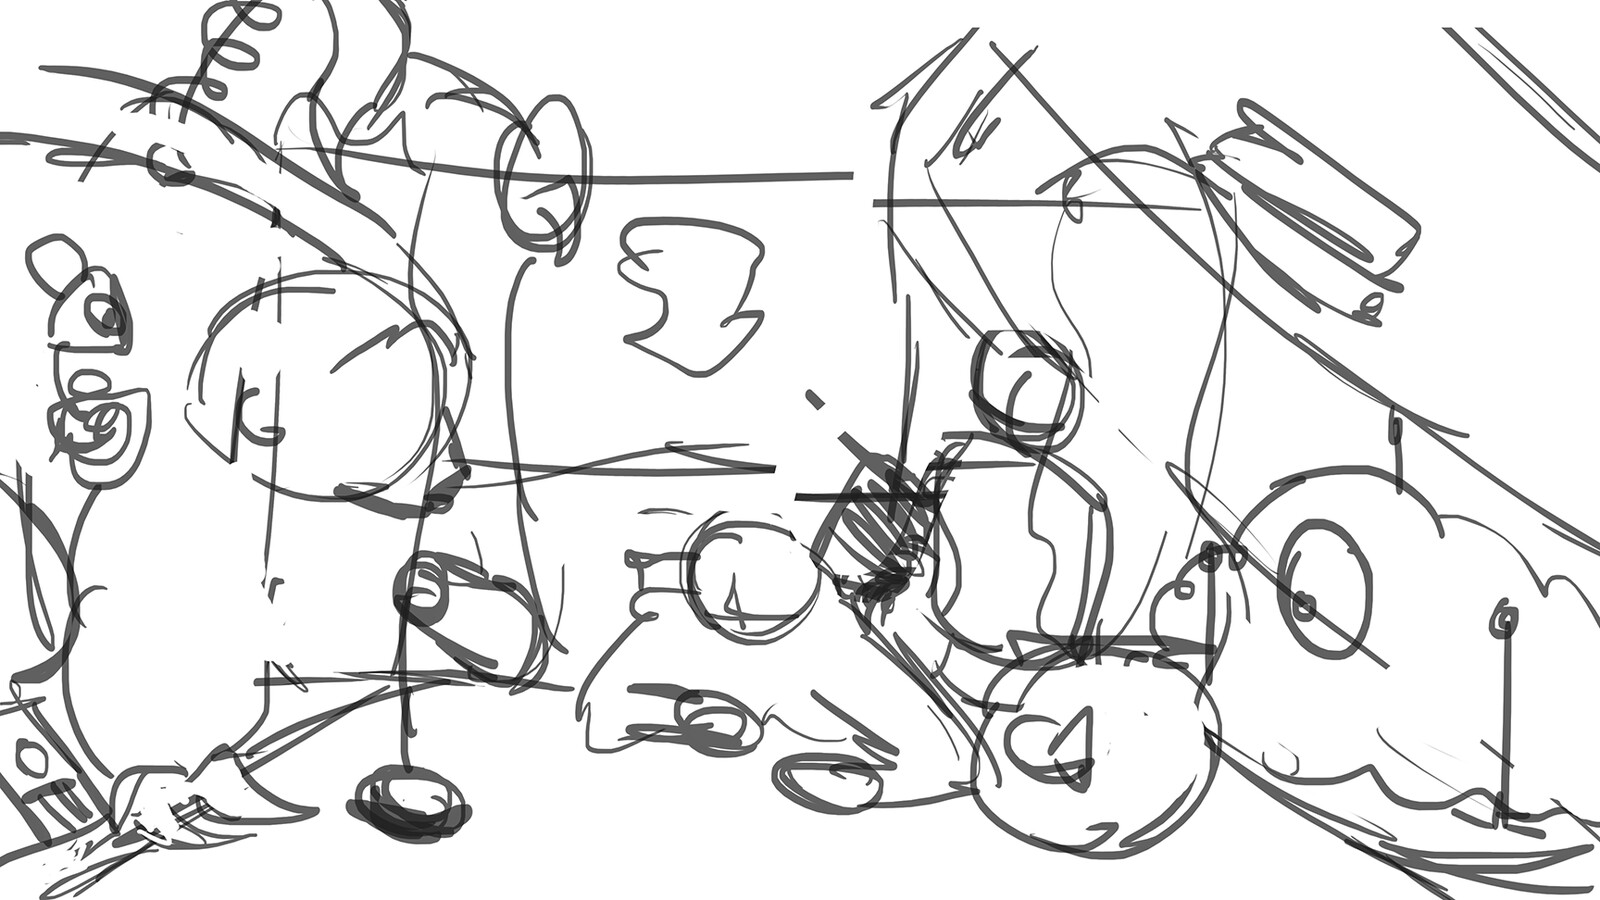 Step 1 of the process - A rough thumbnail, establishing general composition.